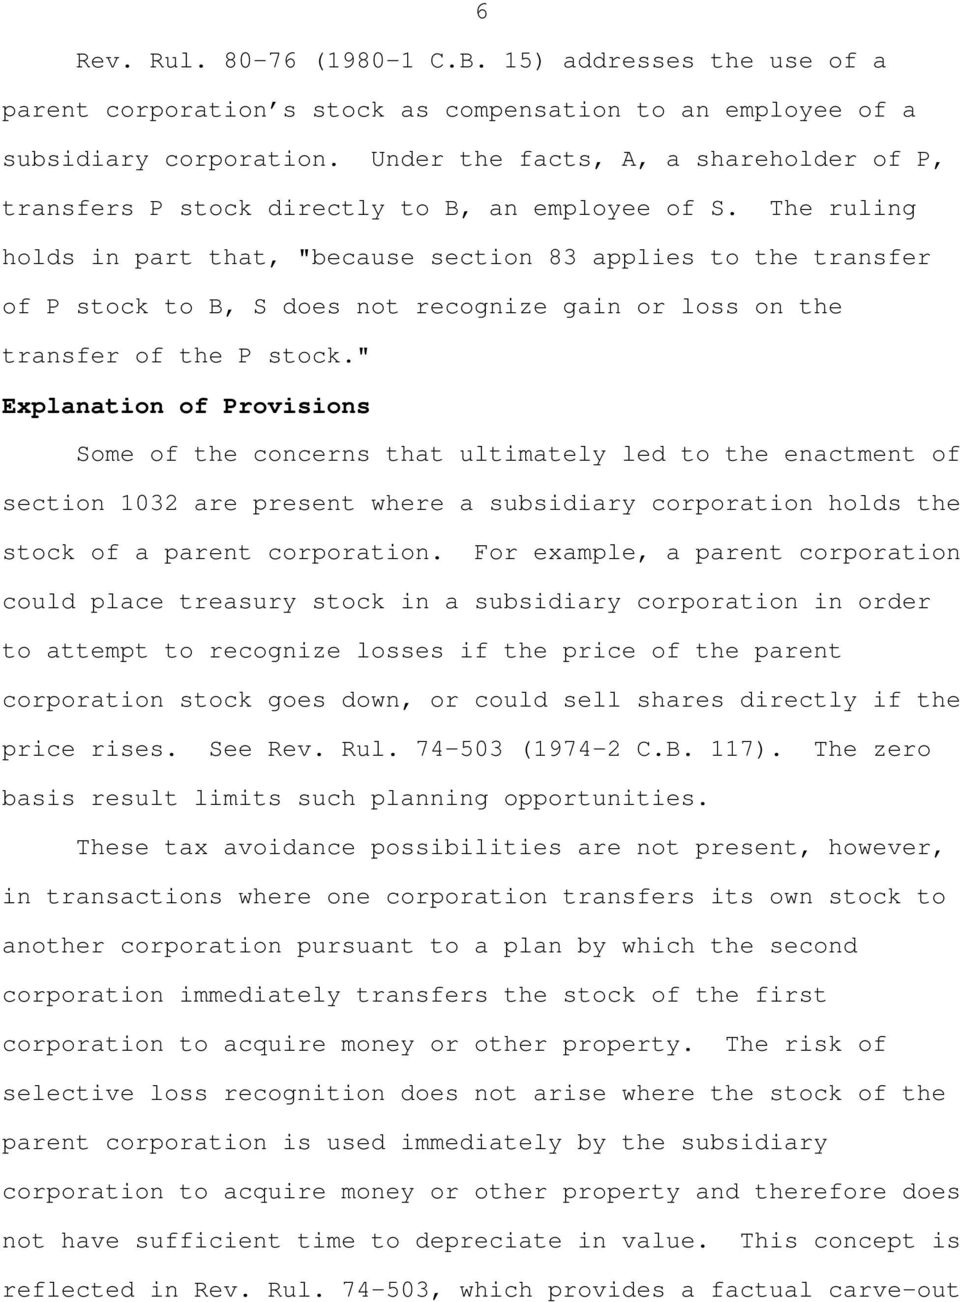 "The ruling holds in part that, ""because section 83 applies to the transfer of P stock to B, S does not recognize gain or loss on the transfer of the P stock."